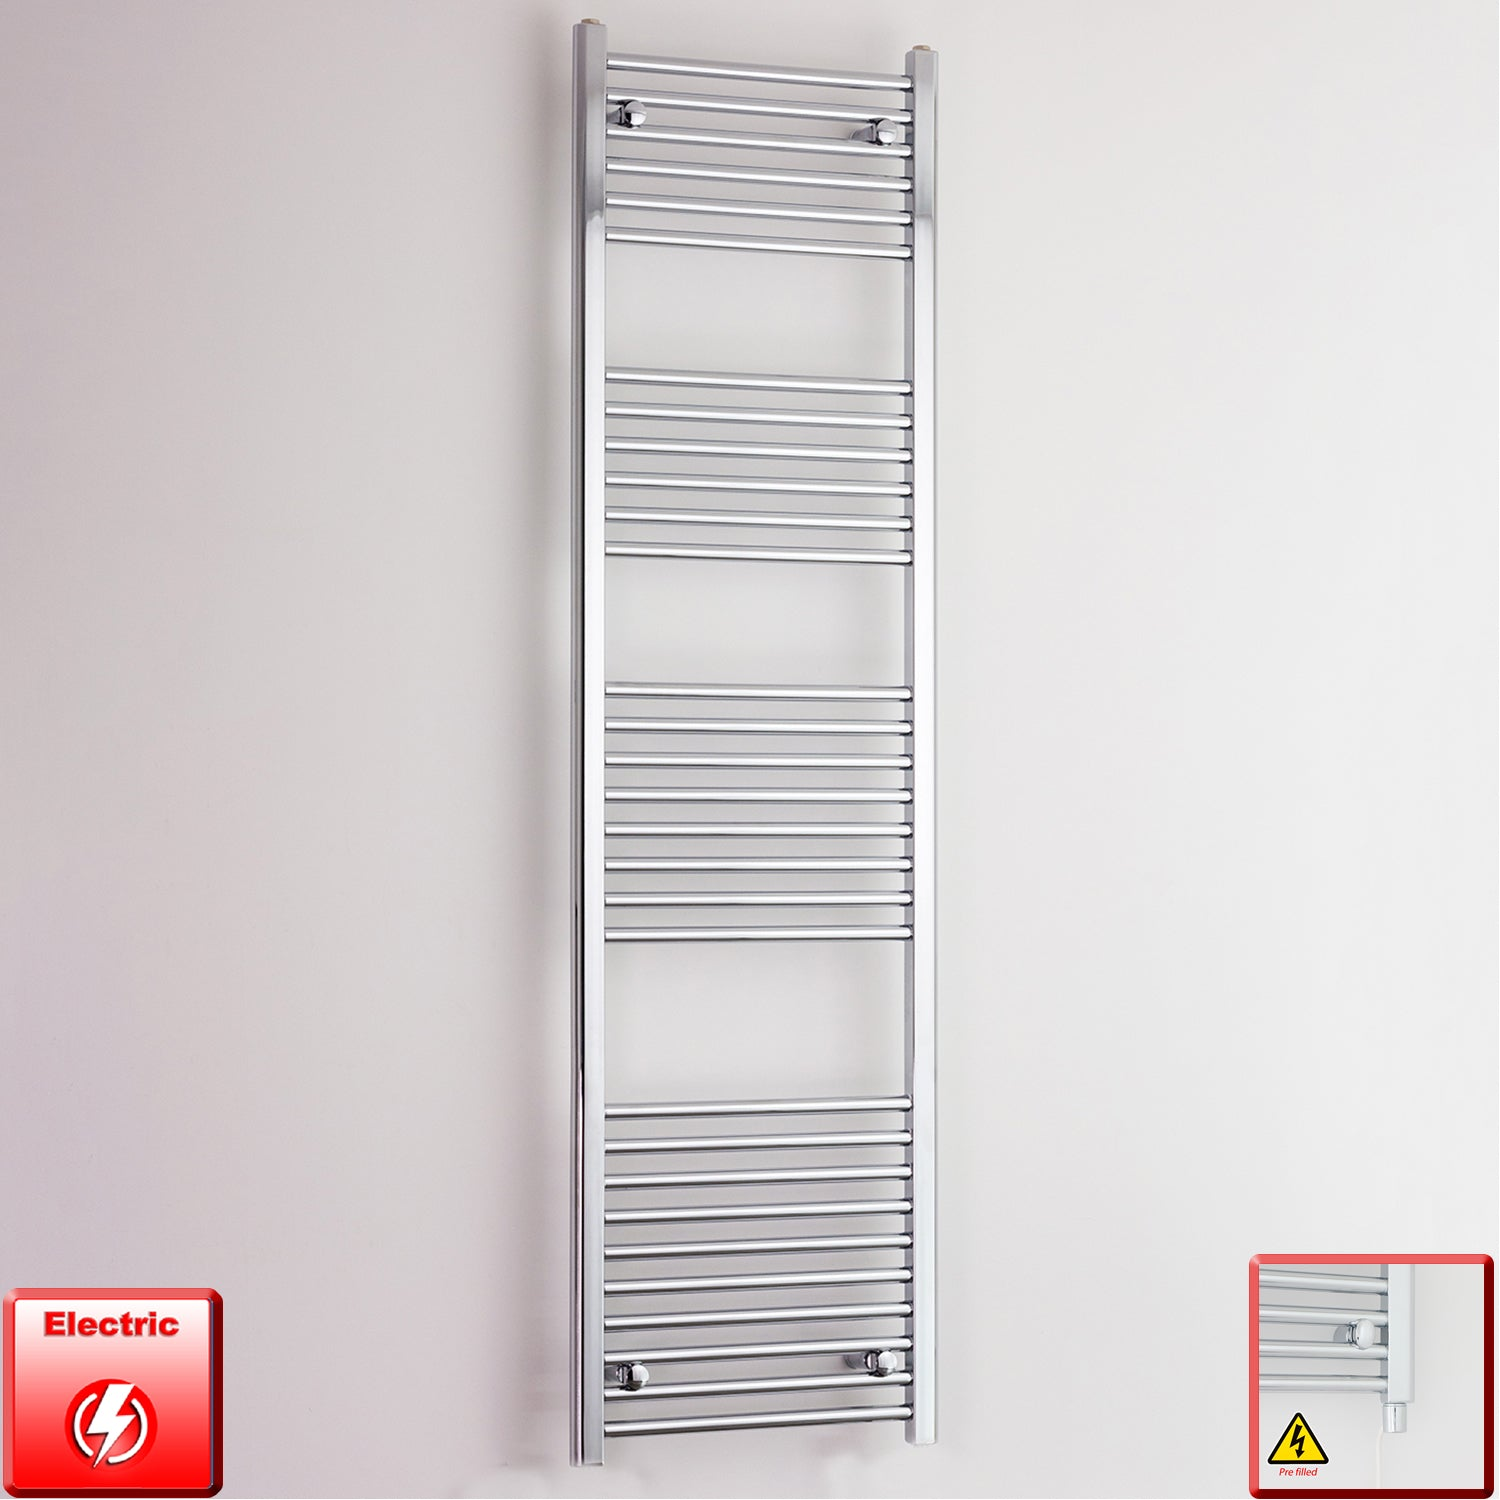 400mm Wide 1800mm High Flat Or Curved Chrome Pre-Filled Electric Heated Towel Rail Radiator HTR,Straight / Single Heat Element